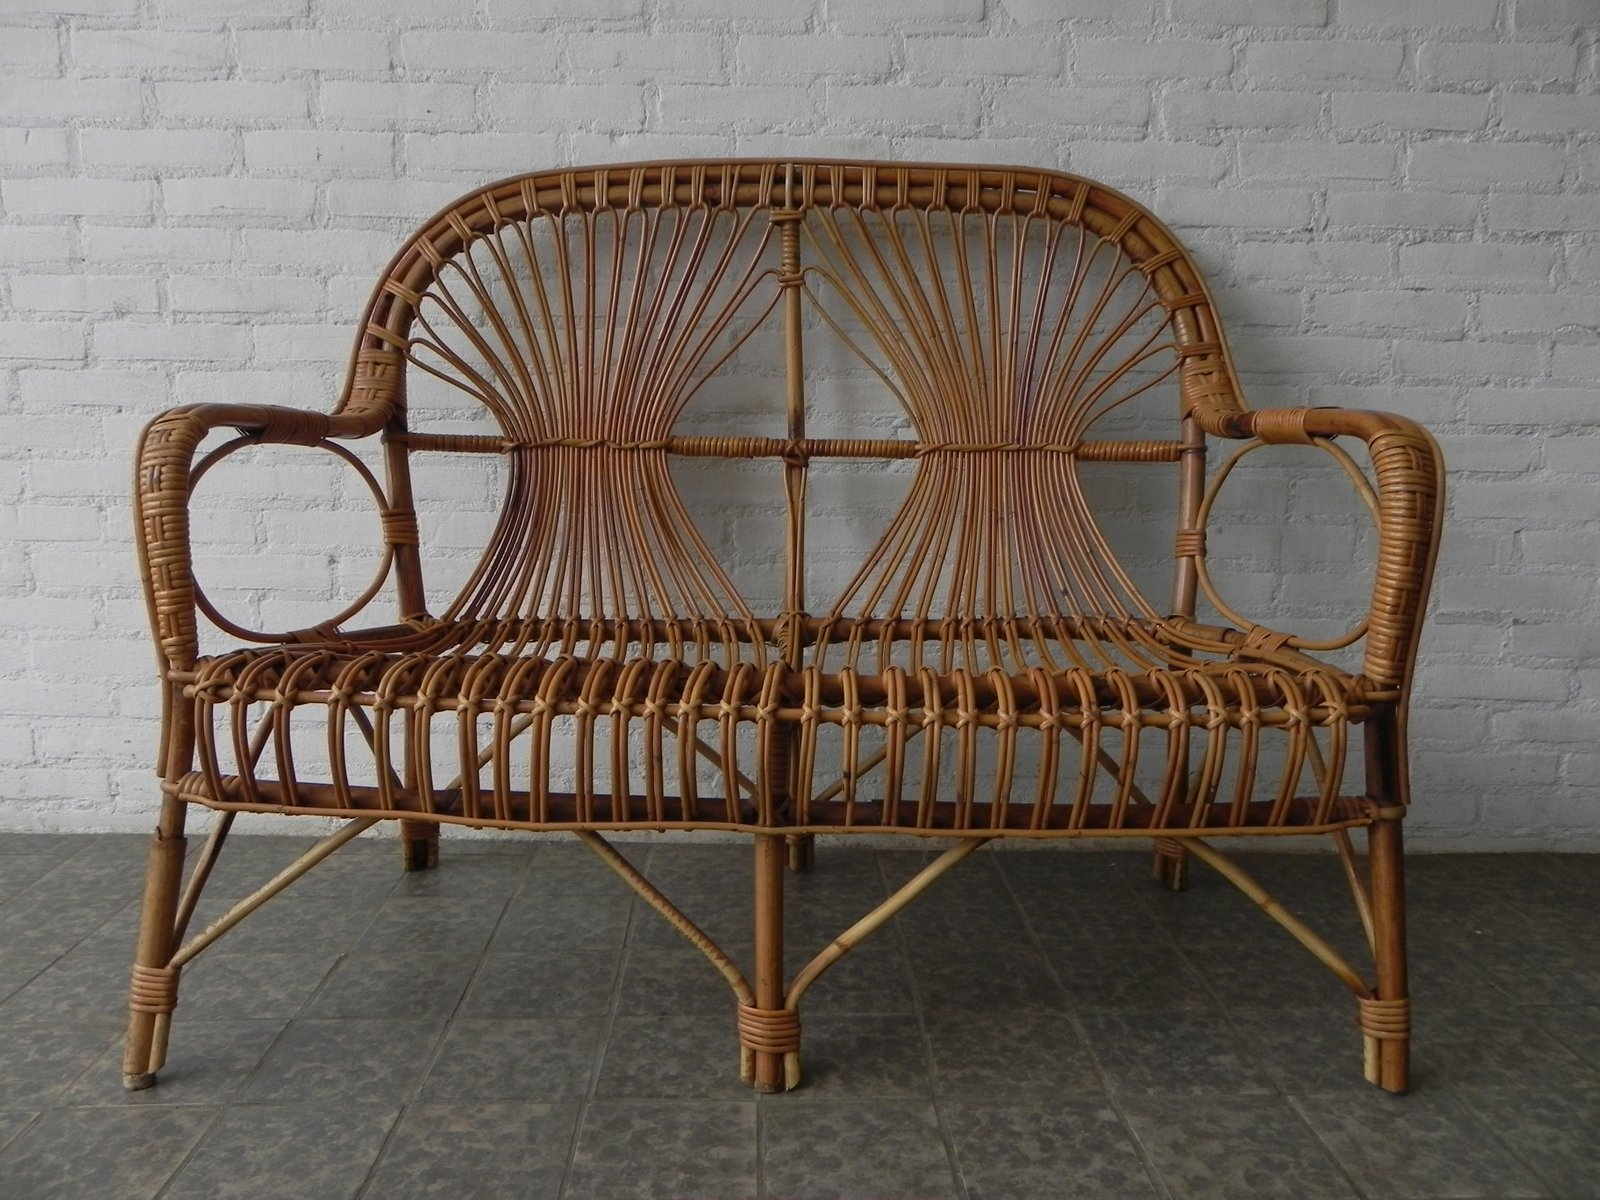 Vintage Bamboo Rattan Bench 1950s For Sale At Pamono